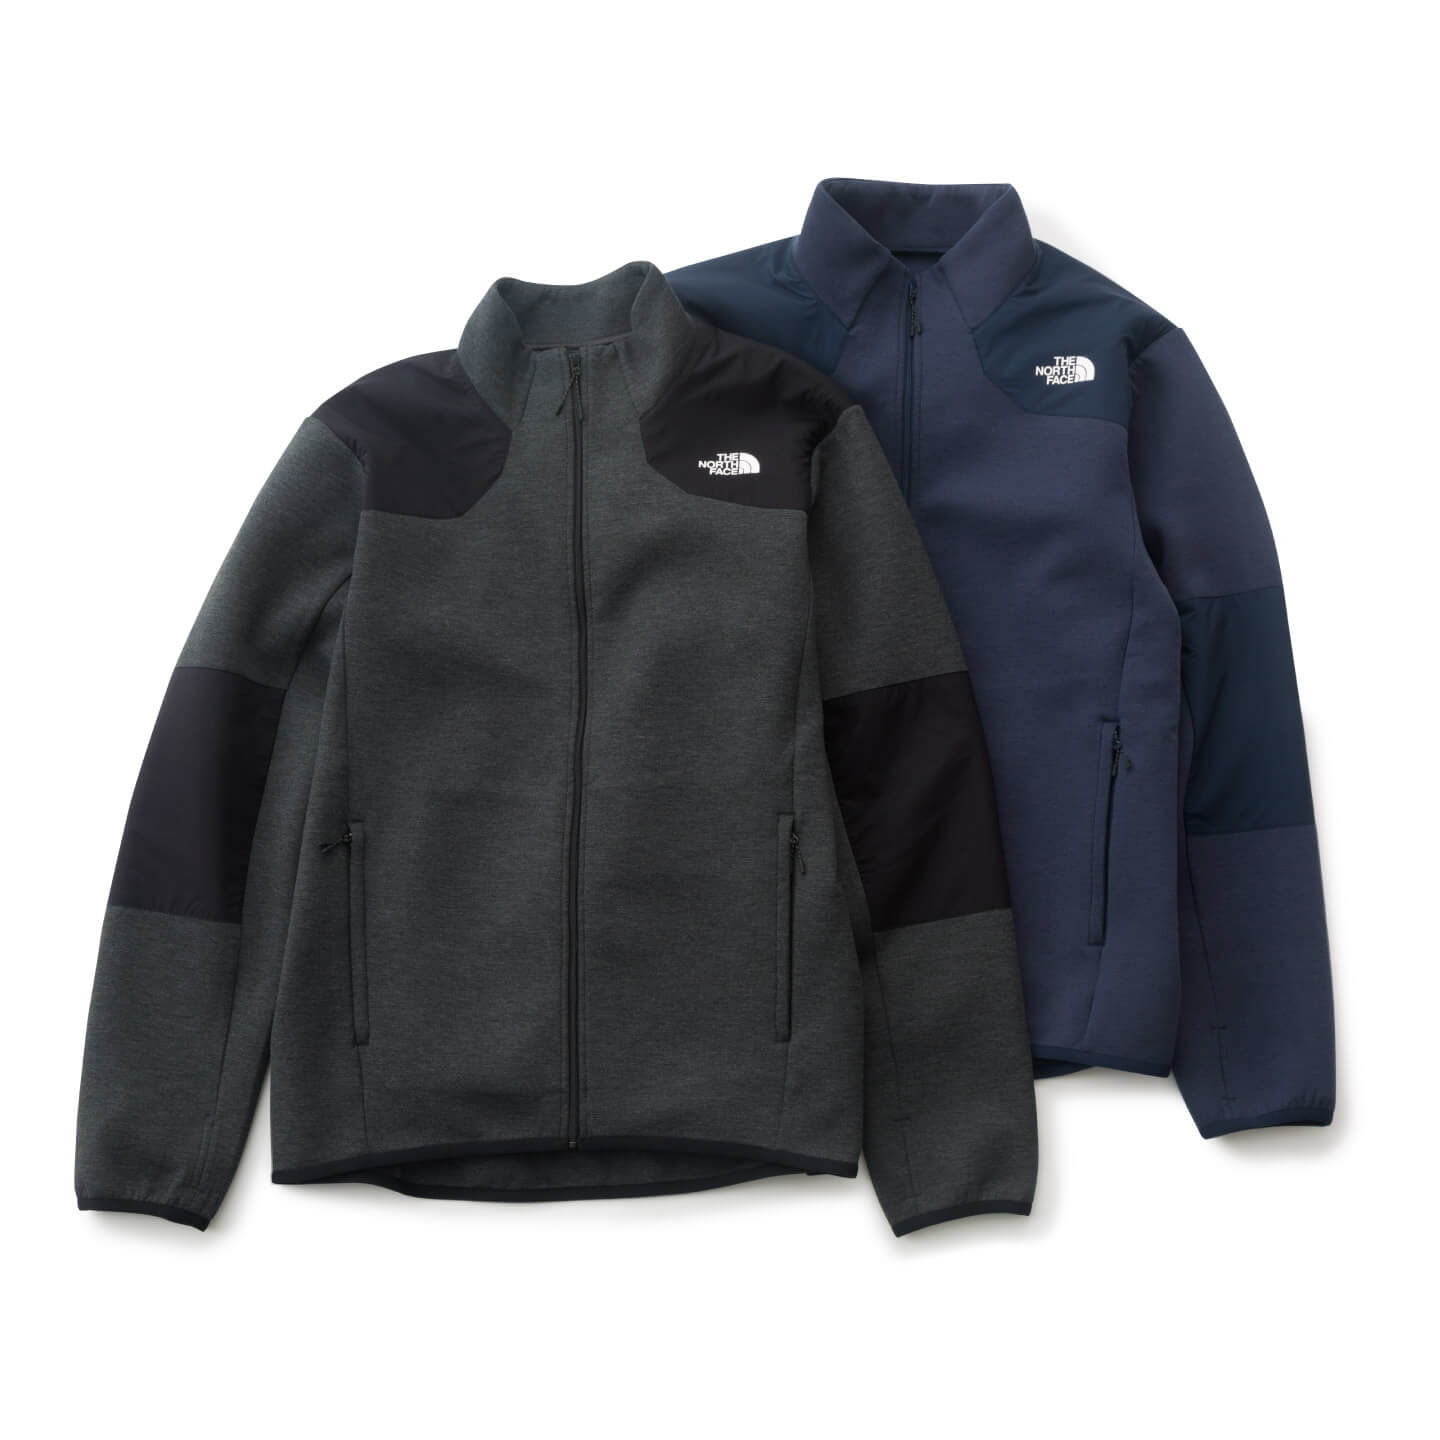 別注 HYBRID TECH AIR SWEAT JACKET 全体写真